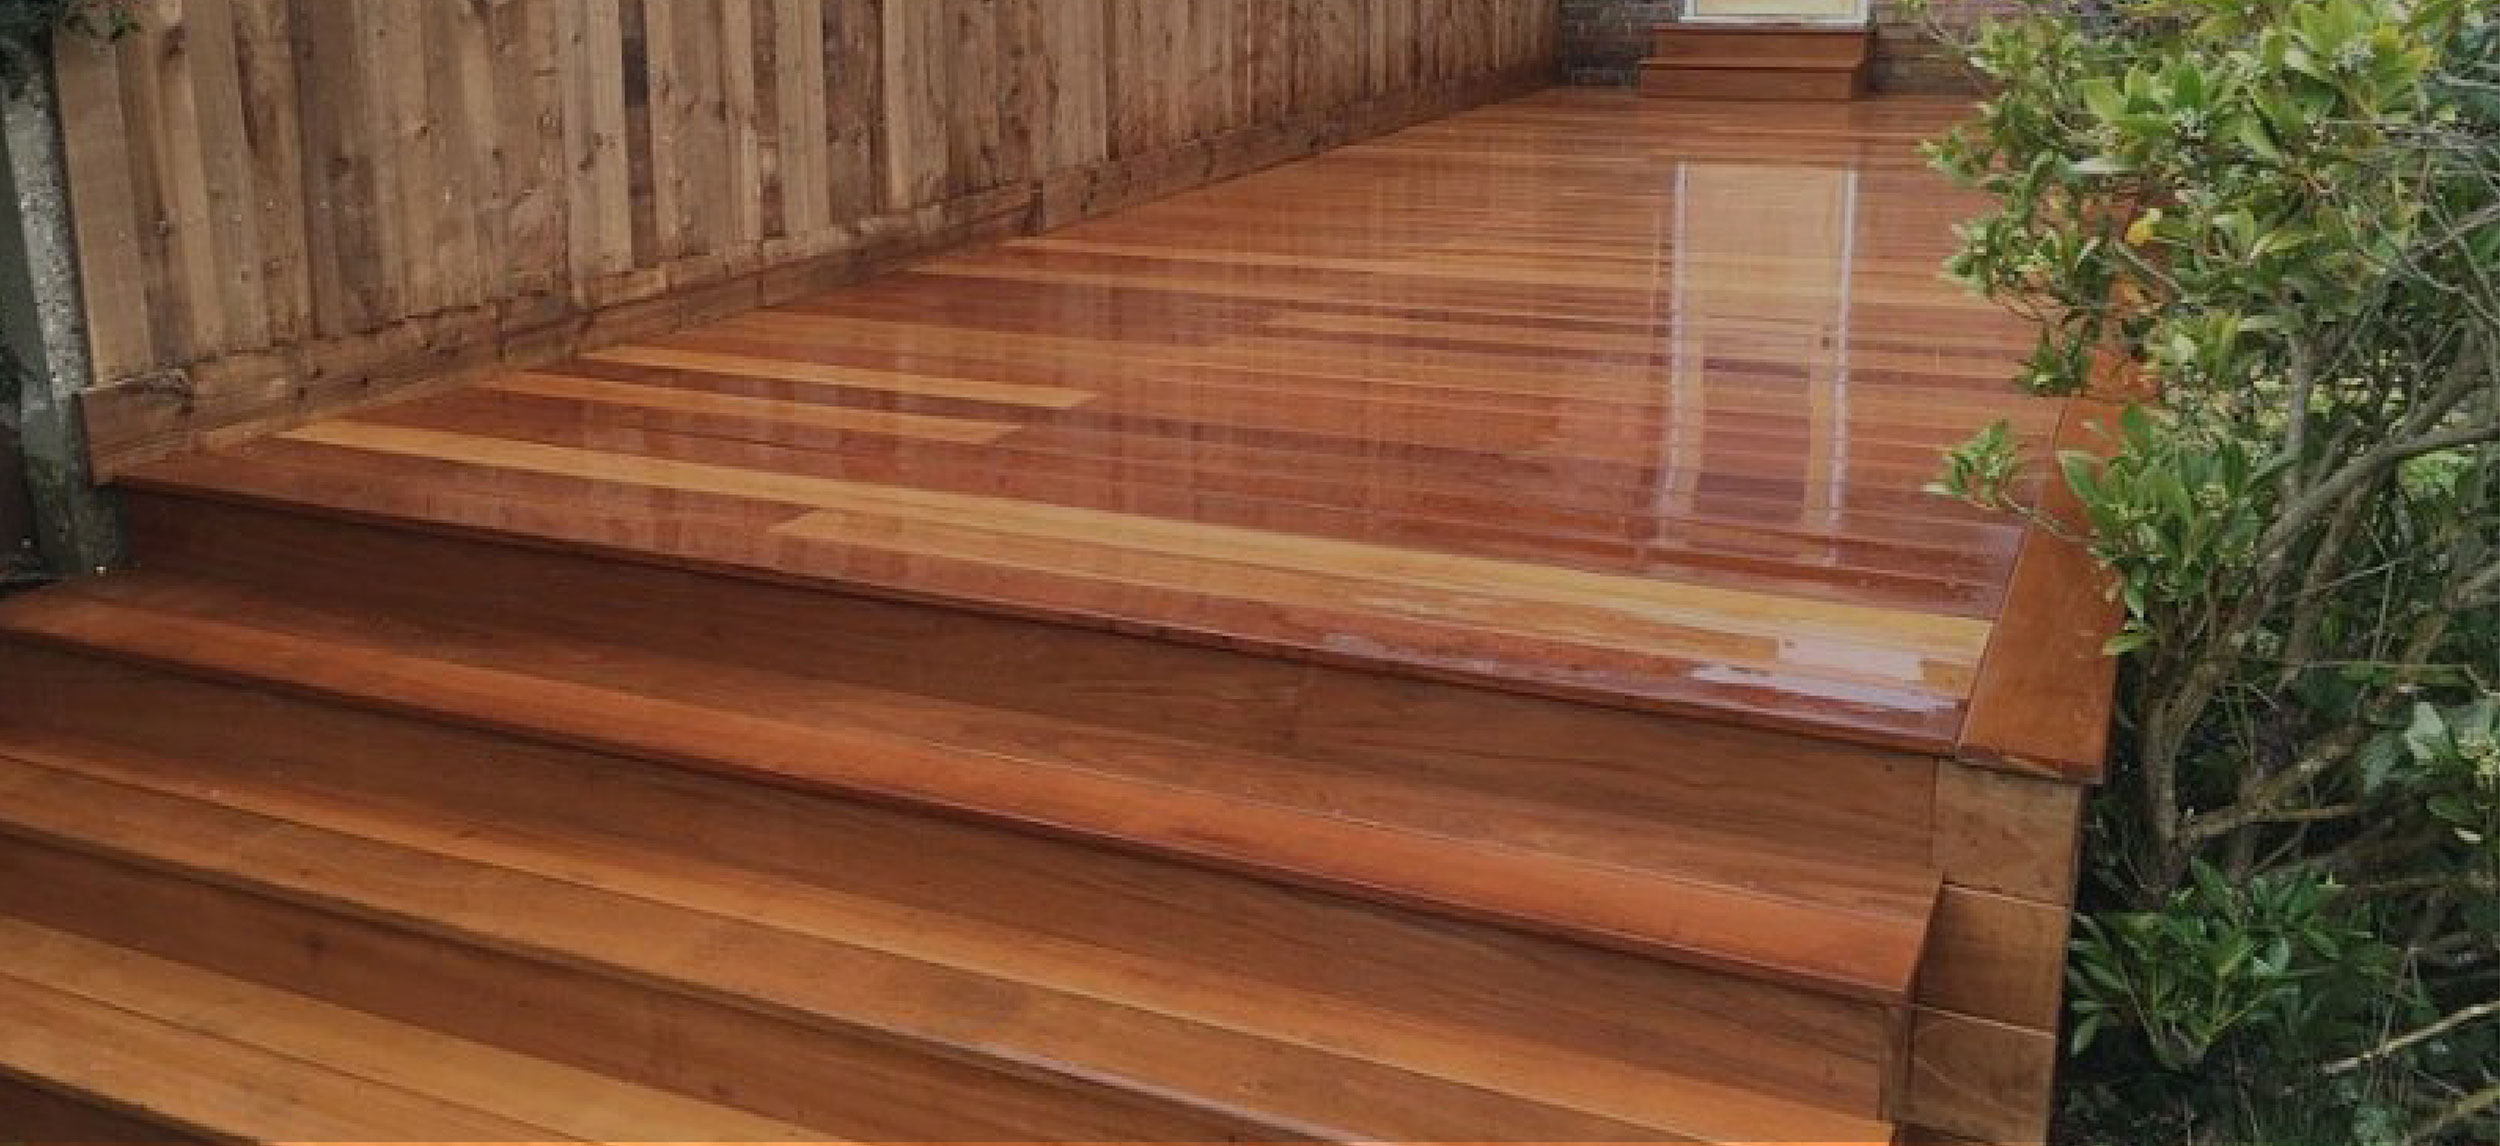 Ipe decking gallery ipe deck finish montclair nj easy for Timber decking seconds